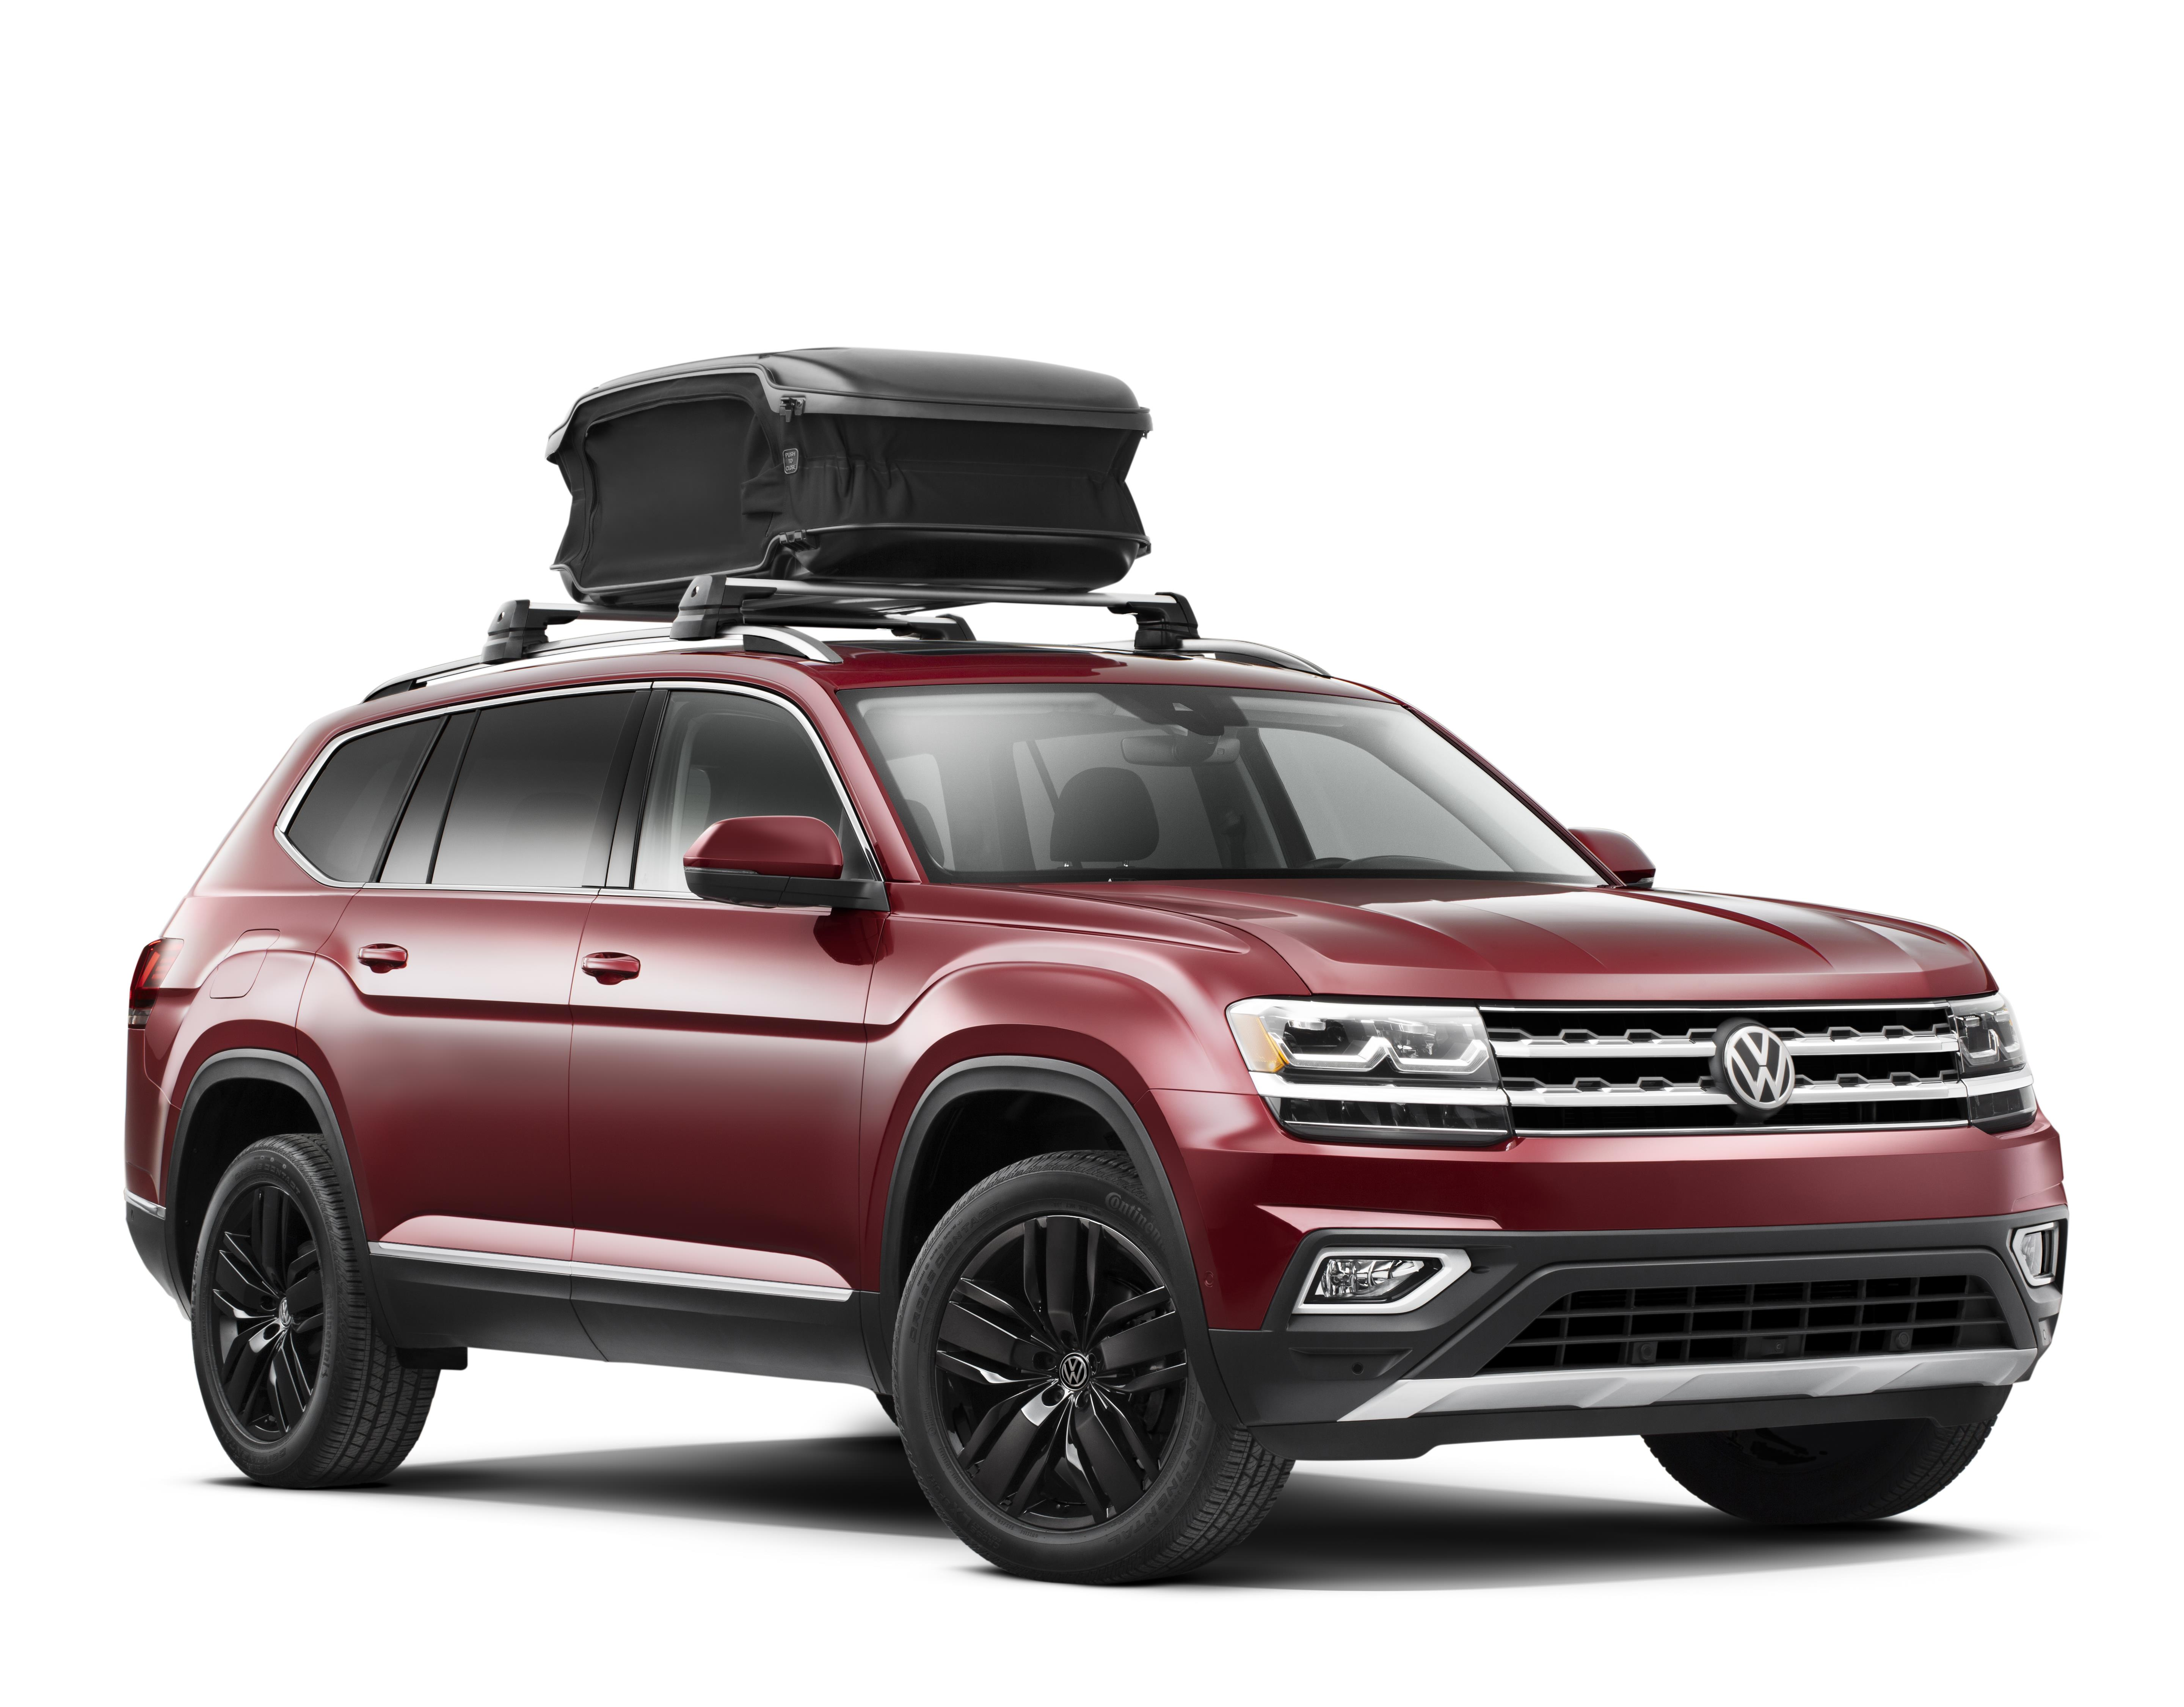 Diagram Base Carrier Bars and URBAN LOADER® Attachment for your 2021 Volkswagen Atlas